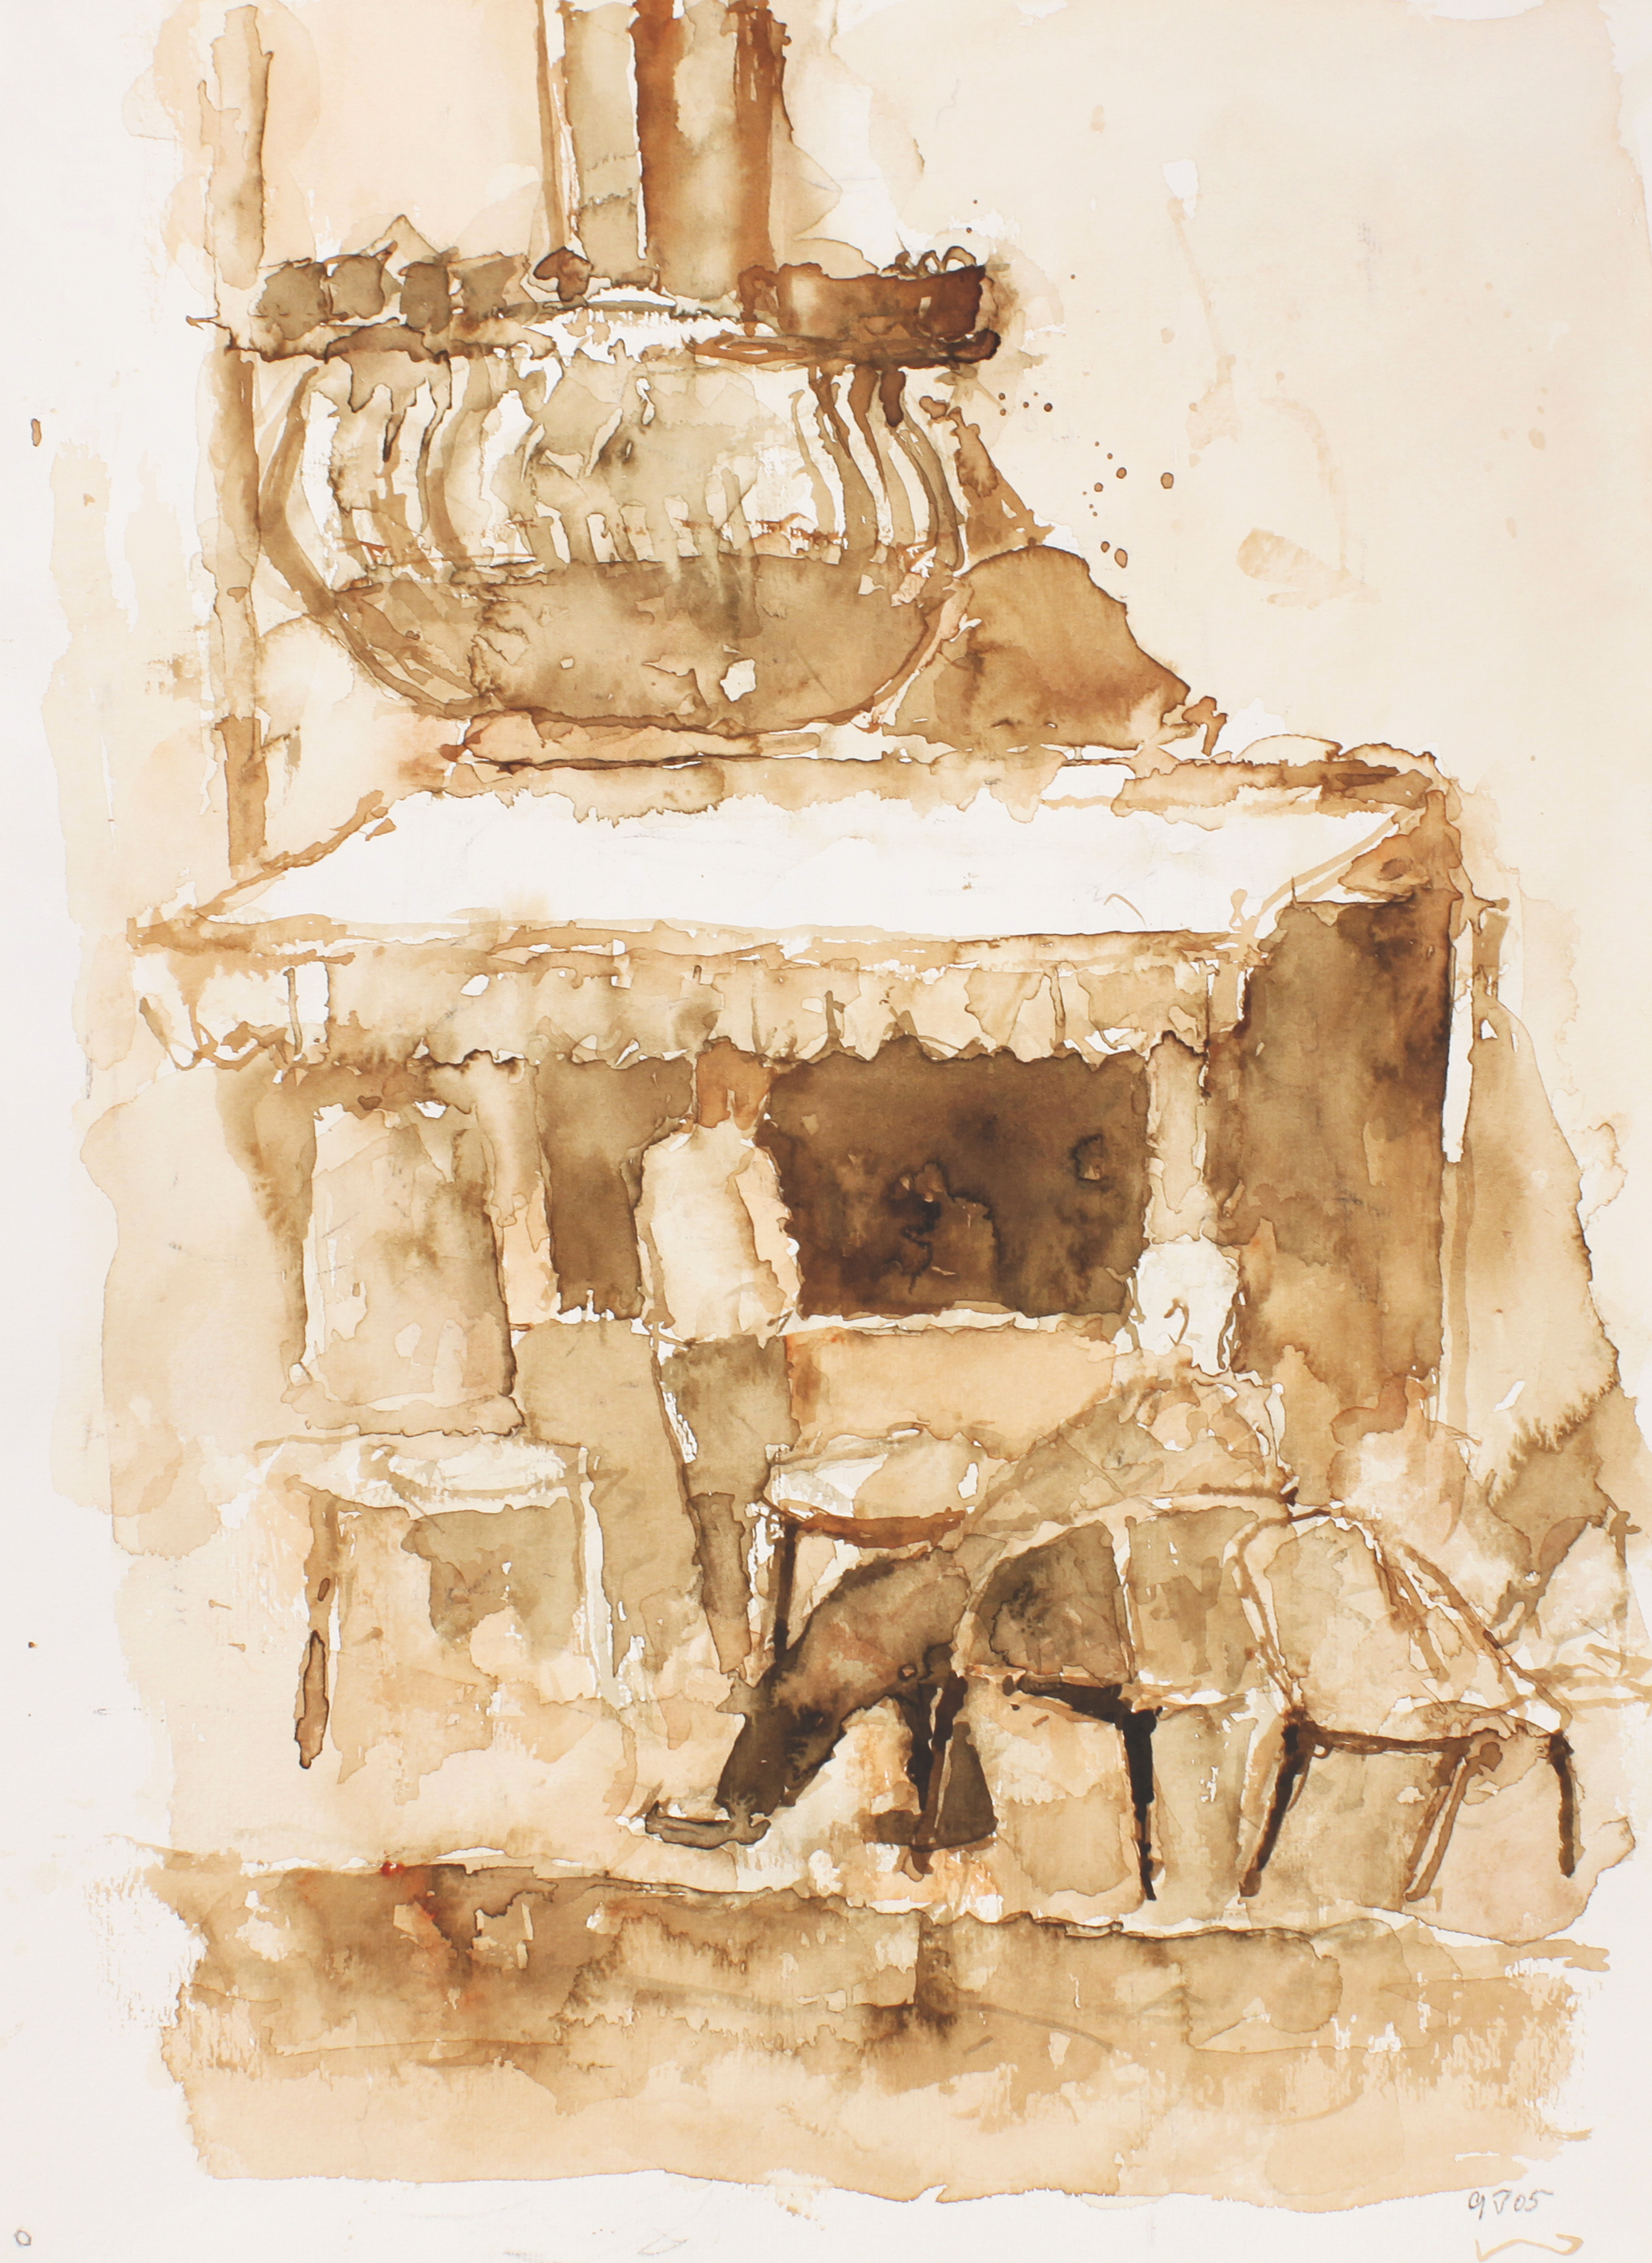 2005_Cafe_Venice_watercolour_on_paper_15x11in_WPF259.jpg